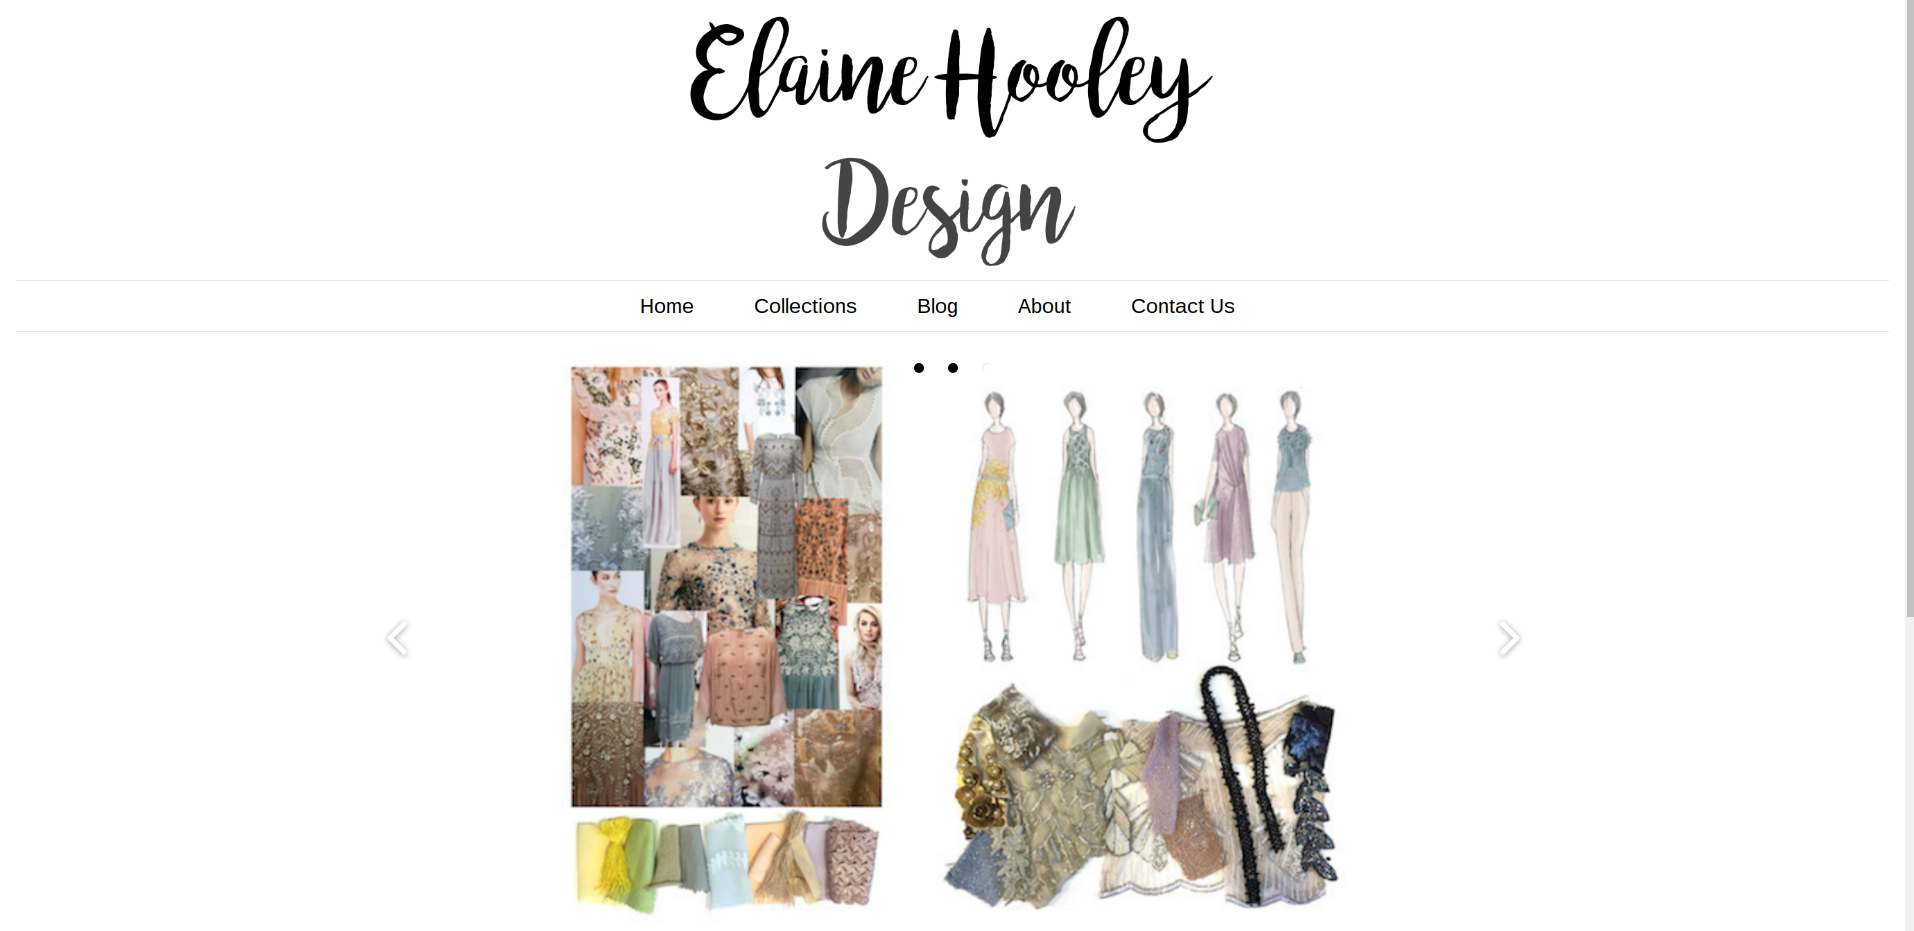 Elaine Hooley Design Freelance Project